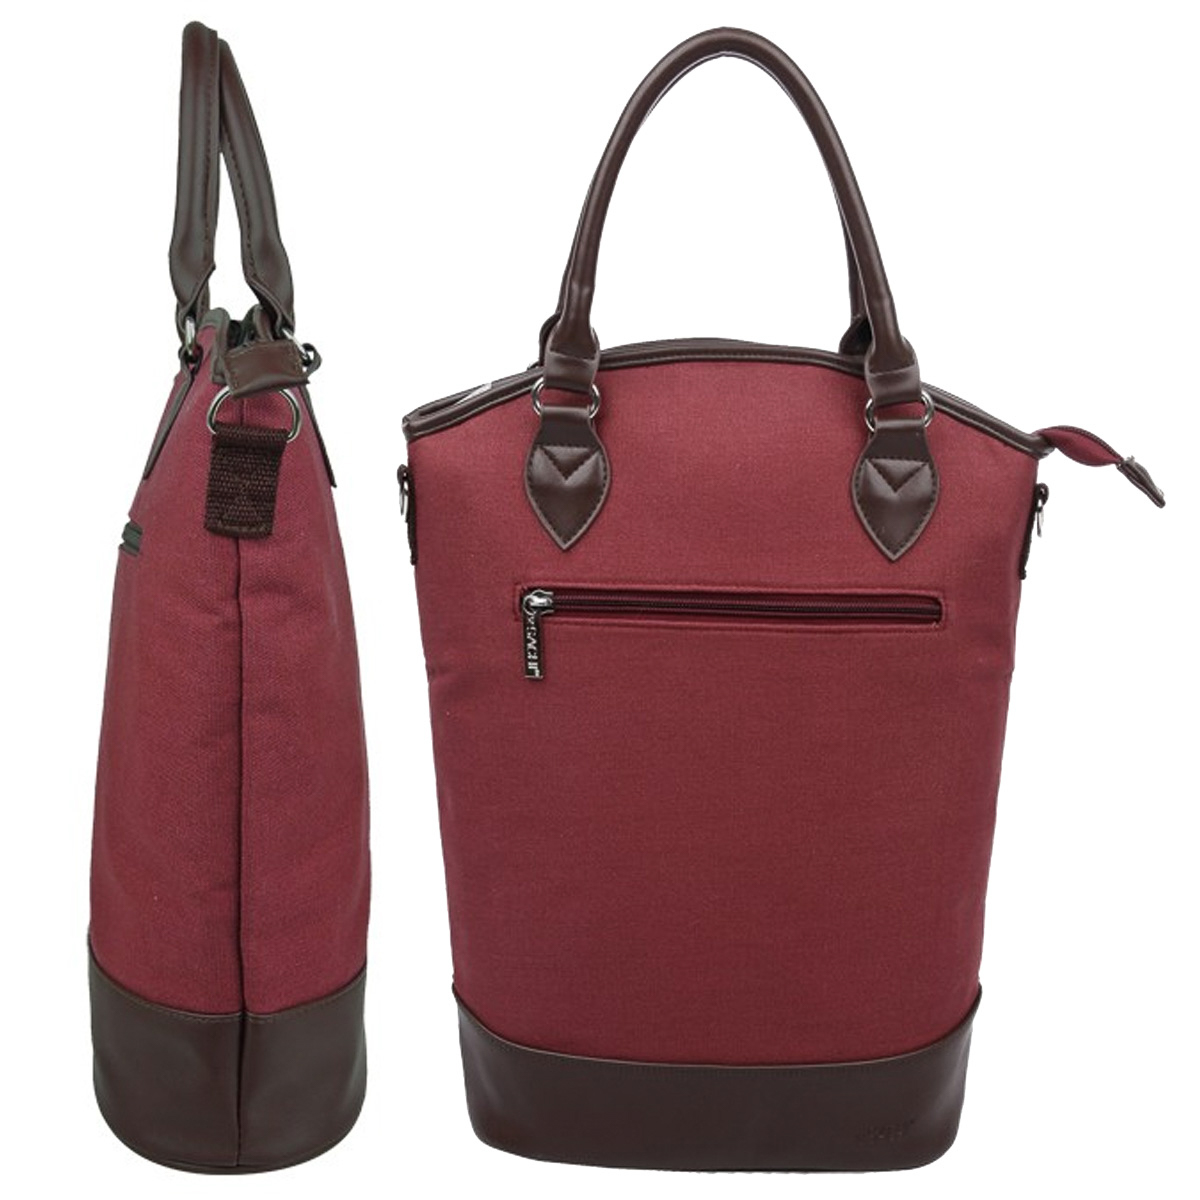 Sachi Vino Fully Lined Thermal Insulated Wine Tote 3 Bottle Carrier Bag w/Strap